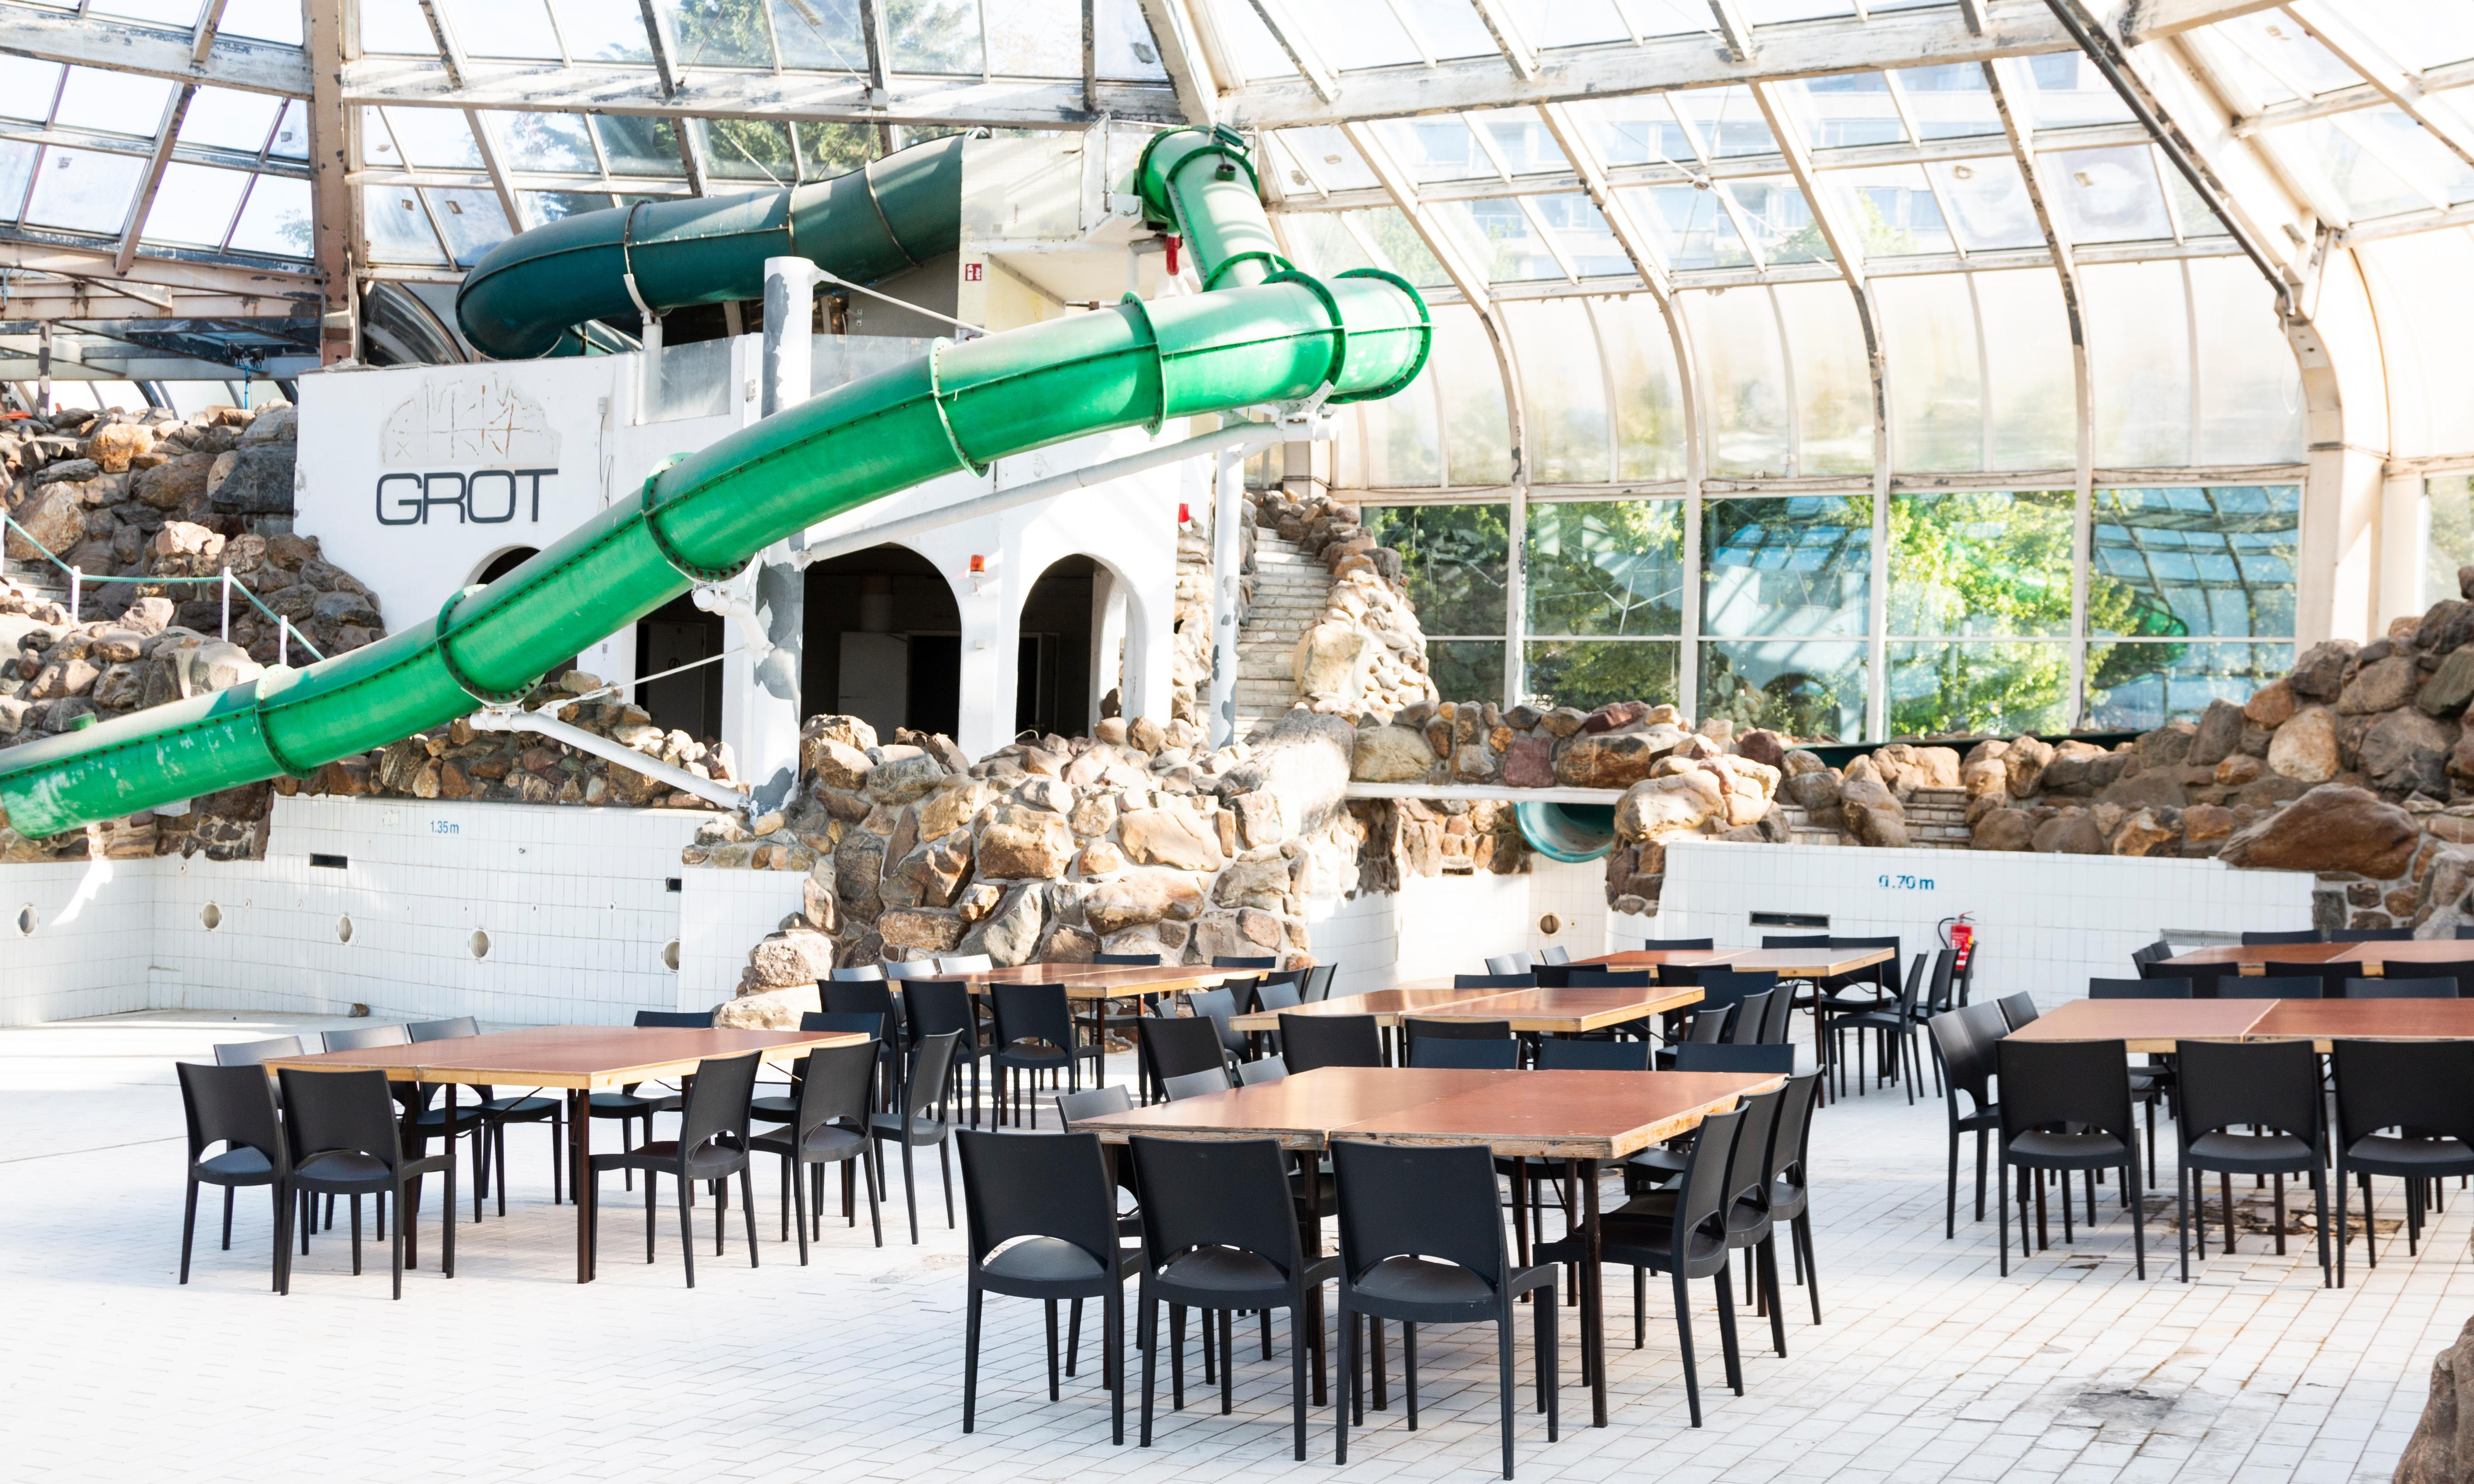 What do you do with a derelict Center Parcs? Map out a waste-free world